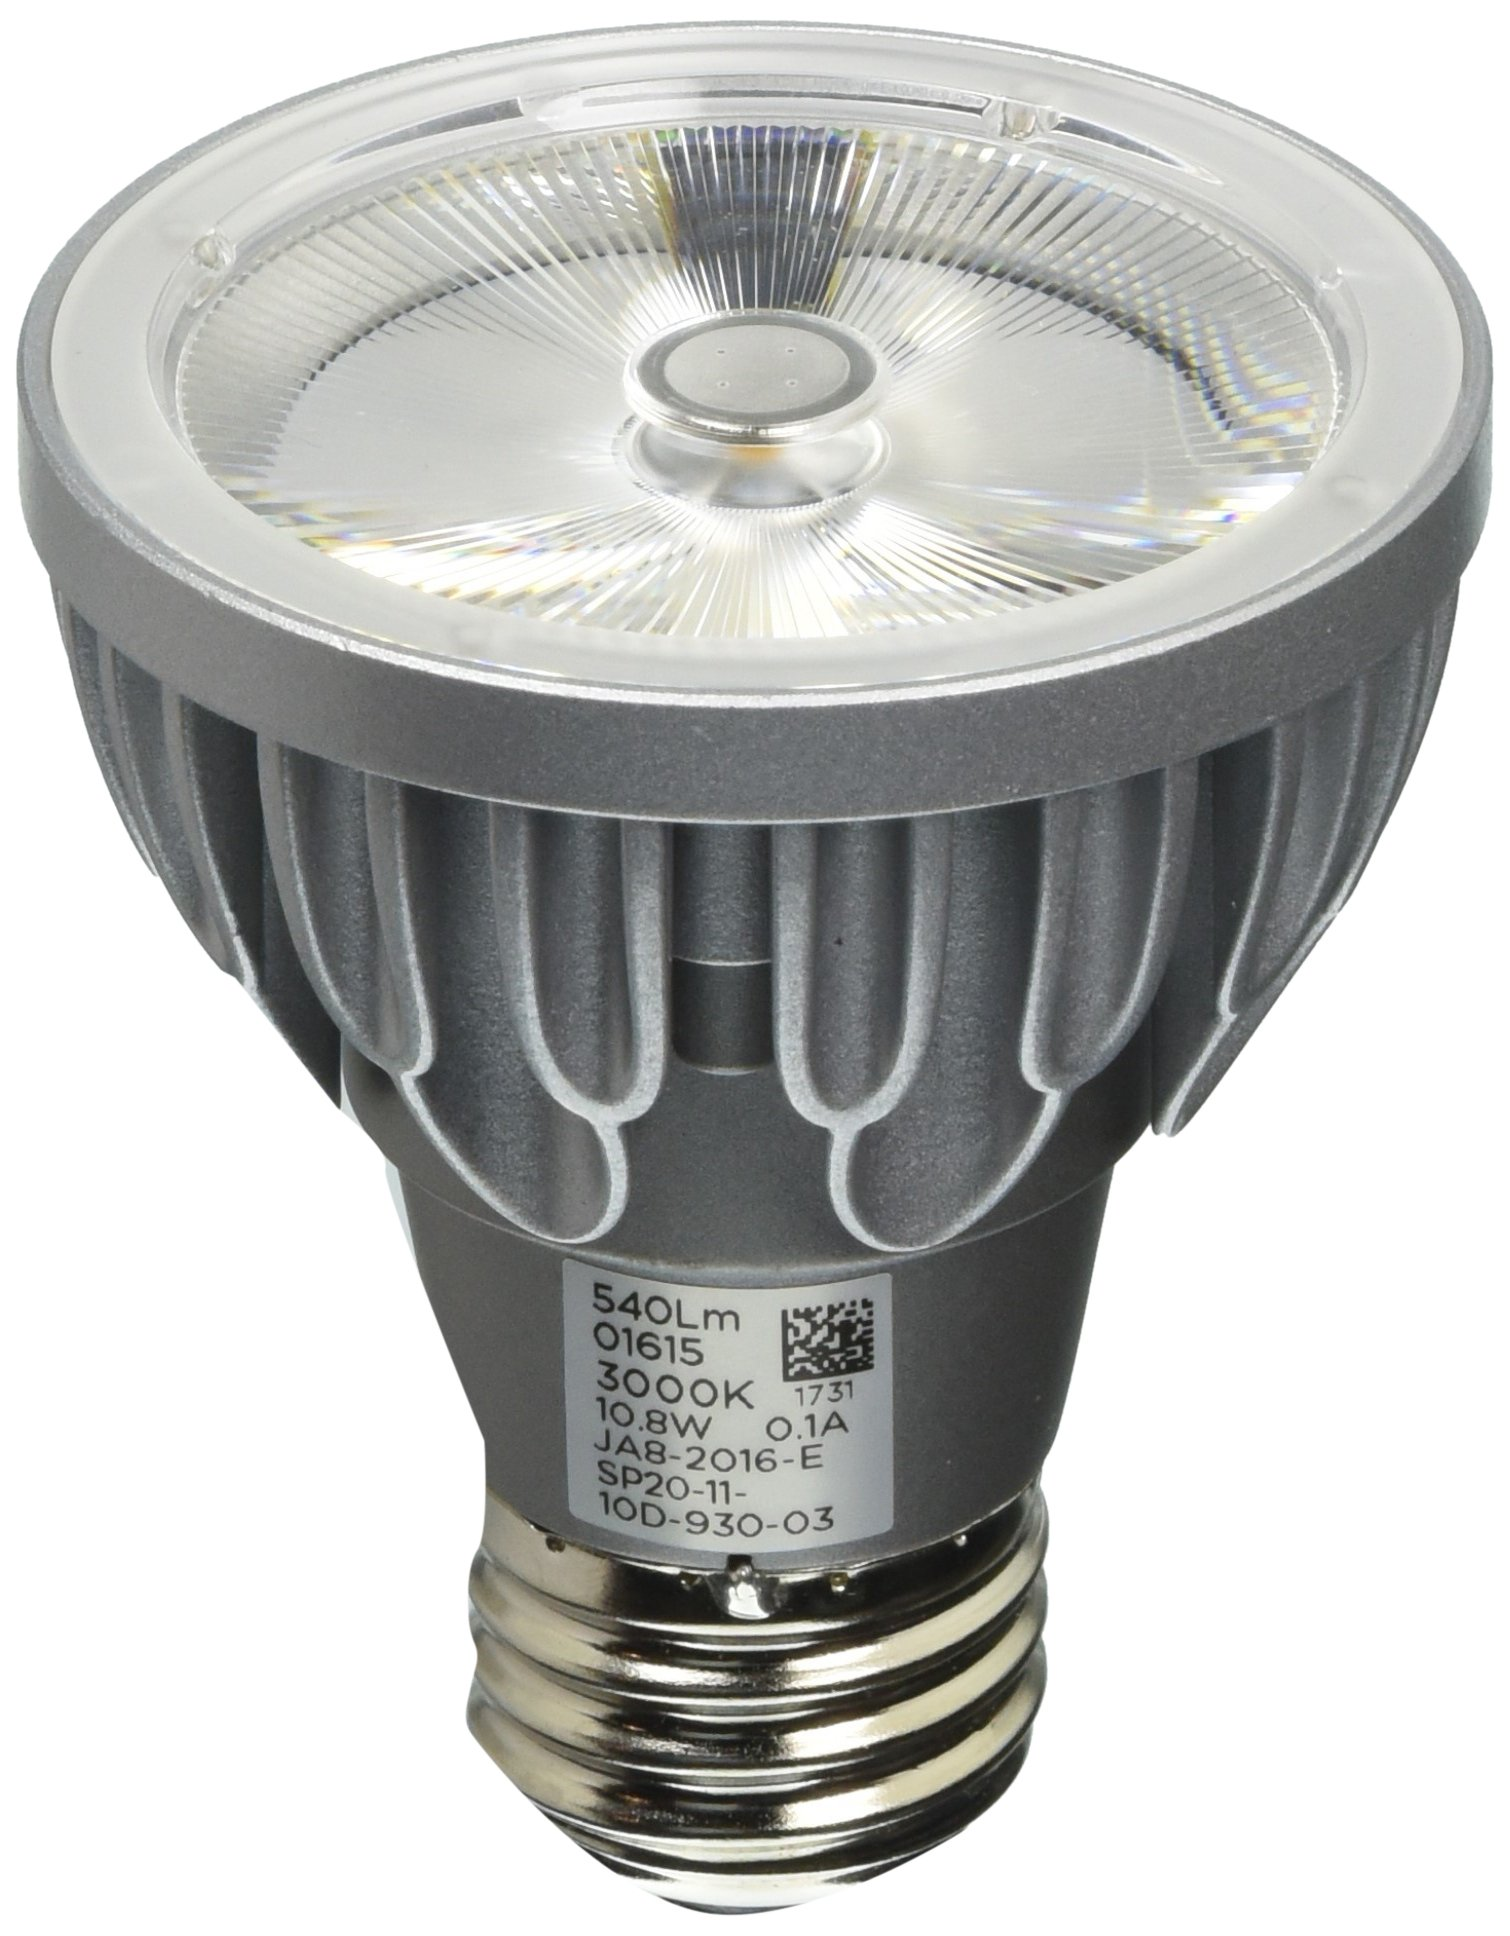 Bulbrite SP20-11-10D-930-03 SORAA 10.8W LED PAR20 3000K VIVID 10° Dimmable Light Bulb, Silver